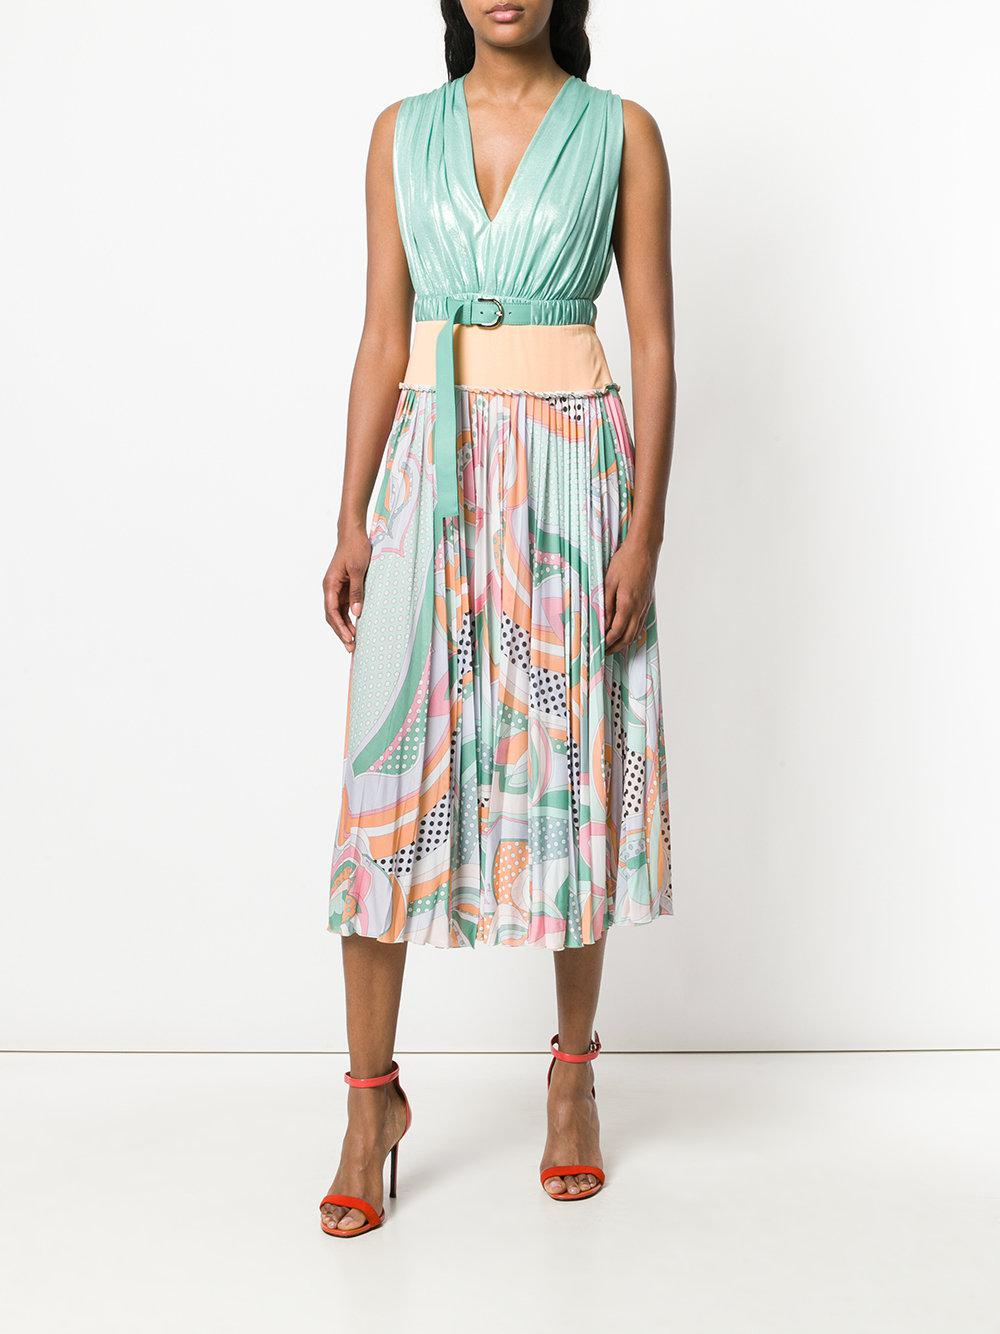 panelled printed midi dress - Multicolour Emilio Pucci Clearance Free Shipping 6Ge0G09qA